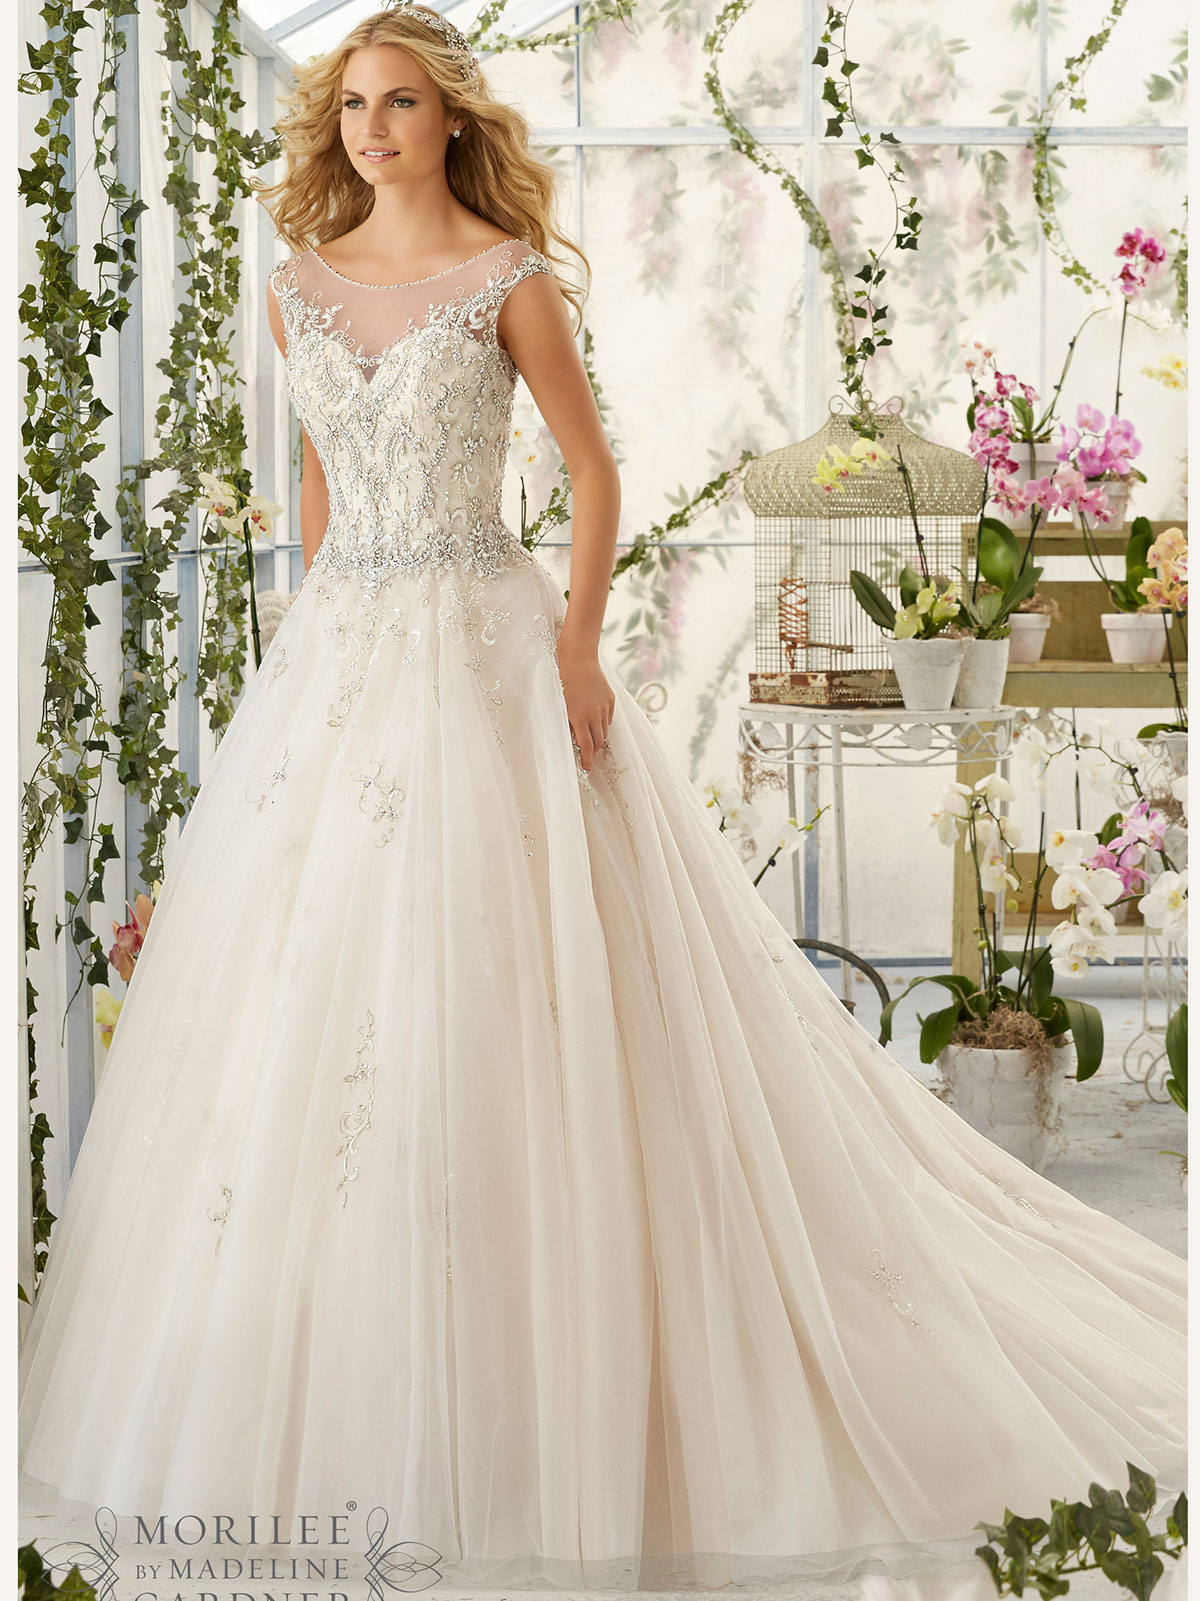 Mori Lee 2818 Illusion Bateau Neckline Bridal Dress